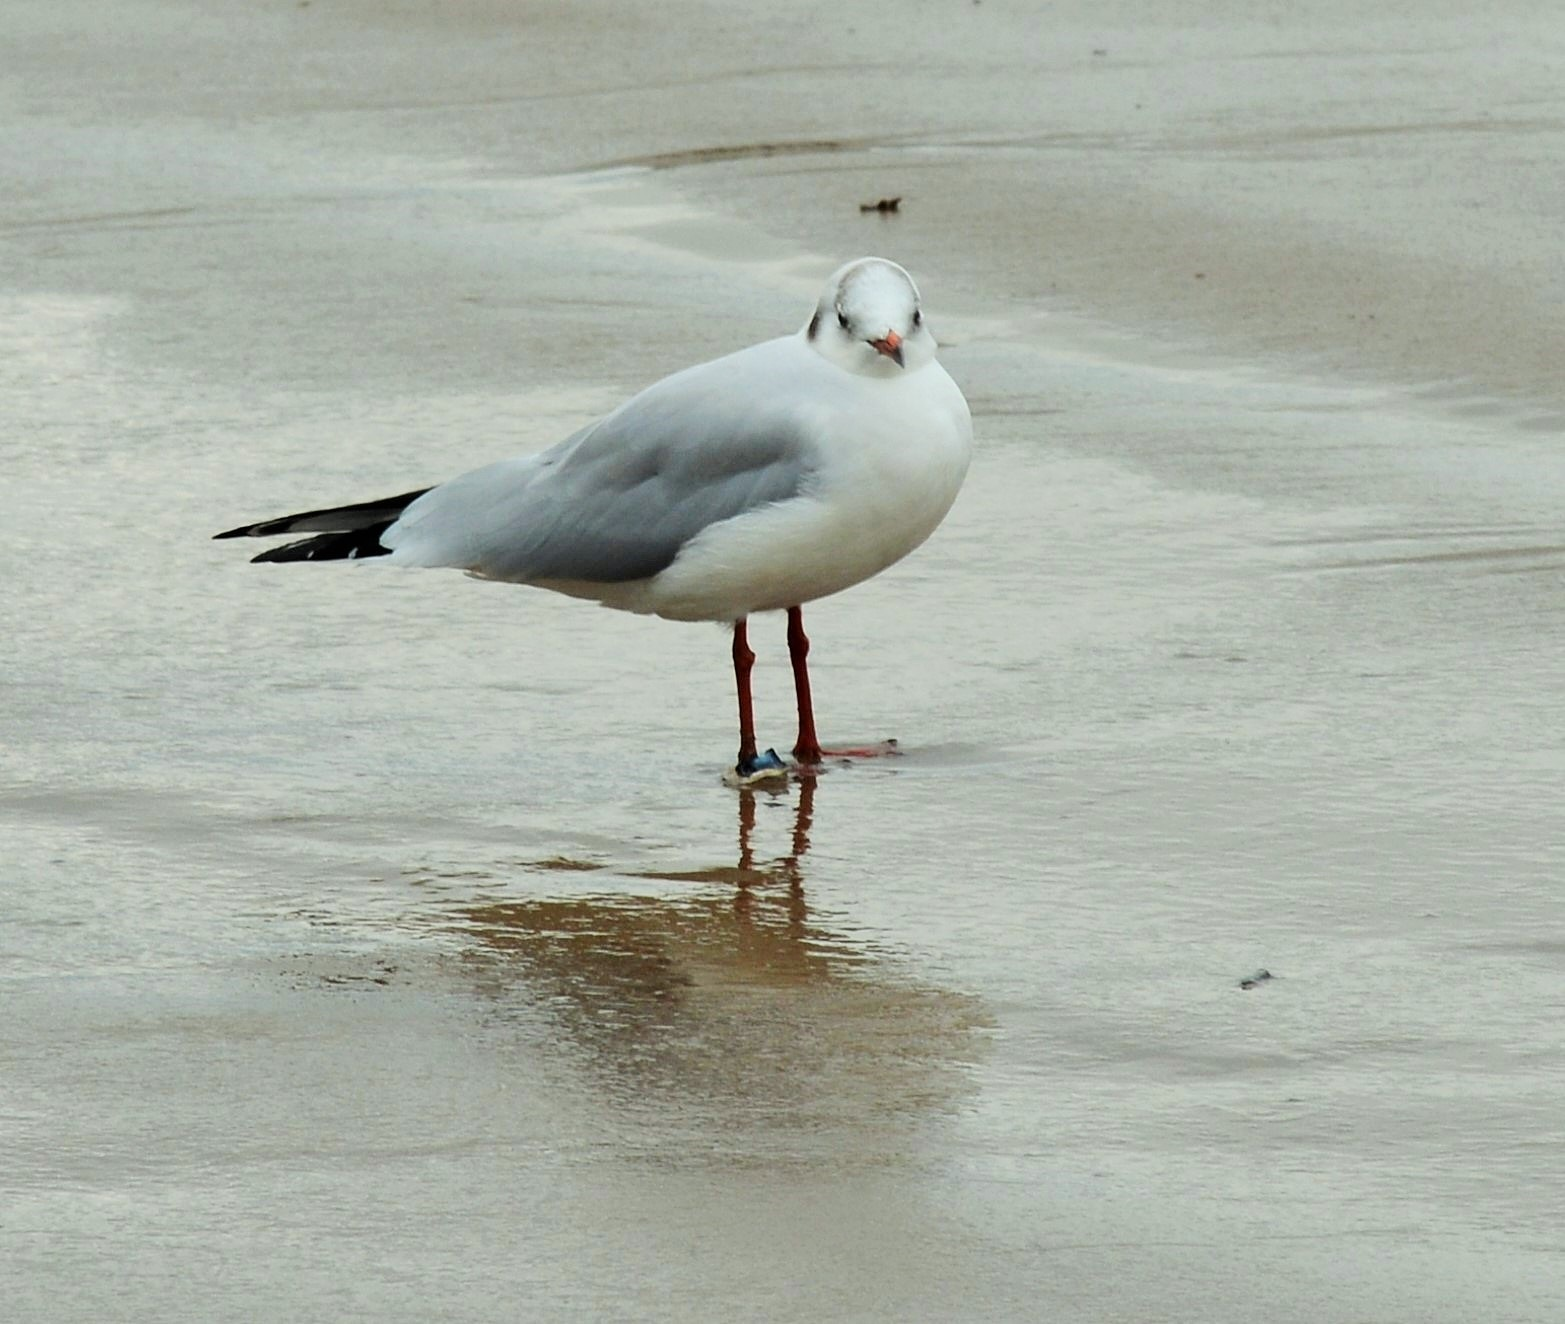 Mouette Rieuse - Laughing Gull by alison16